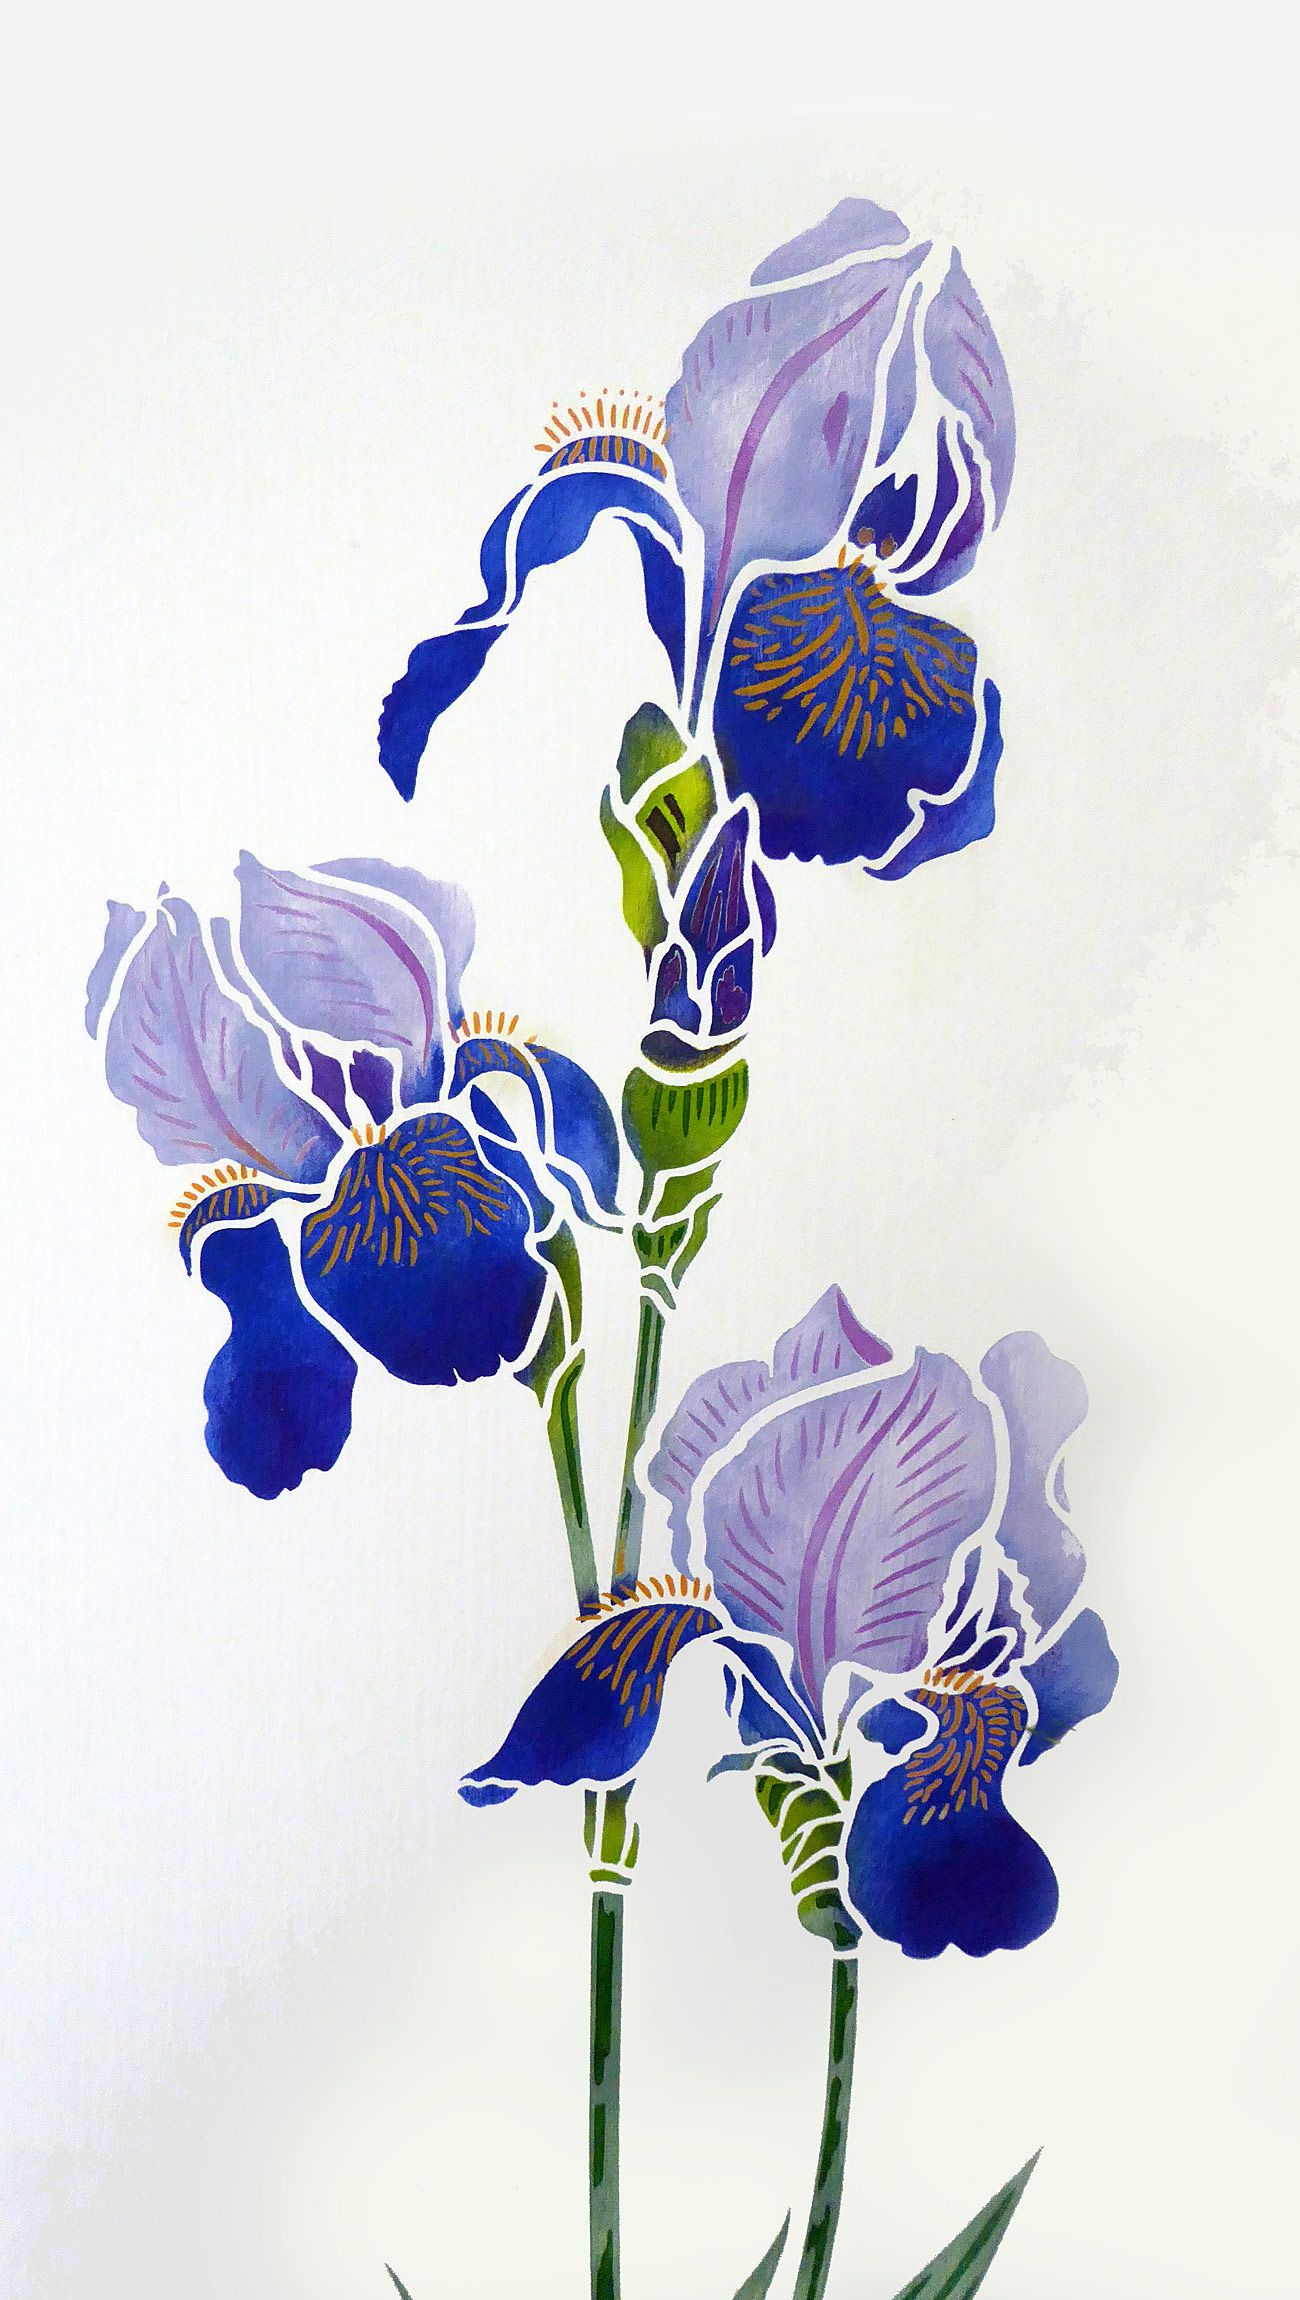 Exquisite large 2 sheet flower stencil the large agapanthus exquisite large 2 sheet flower stencil the large agapanthus stencil based on hennys closely observed dhlflorist Images